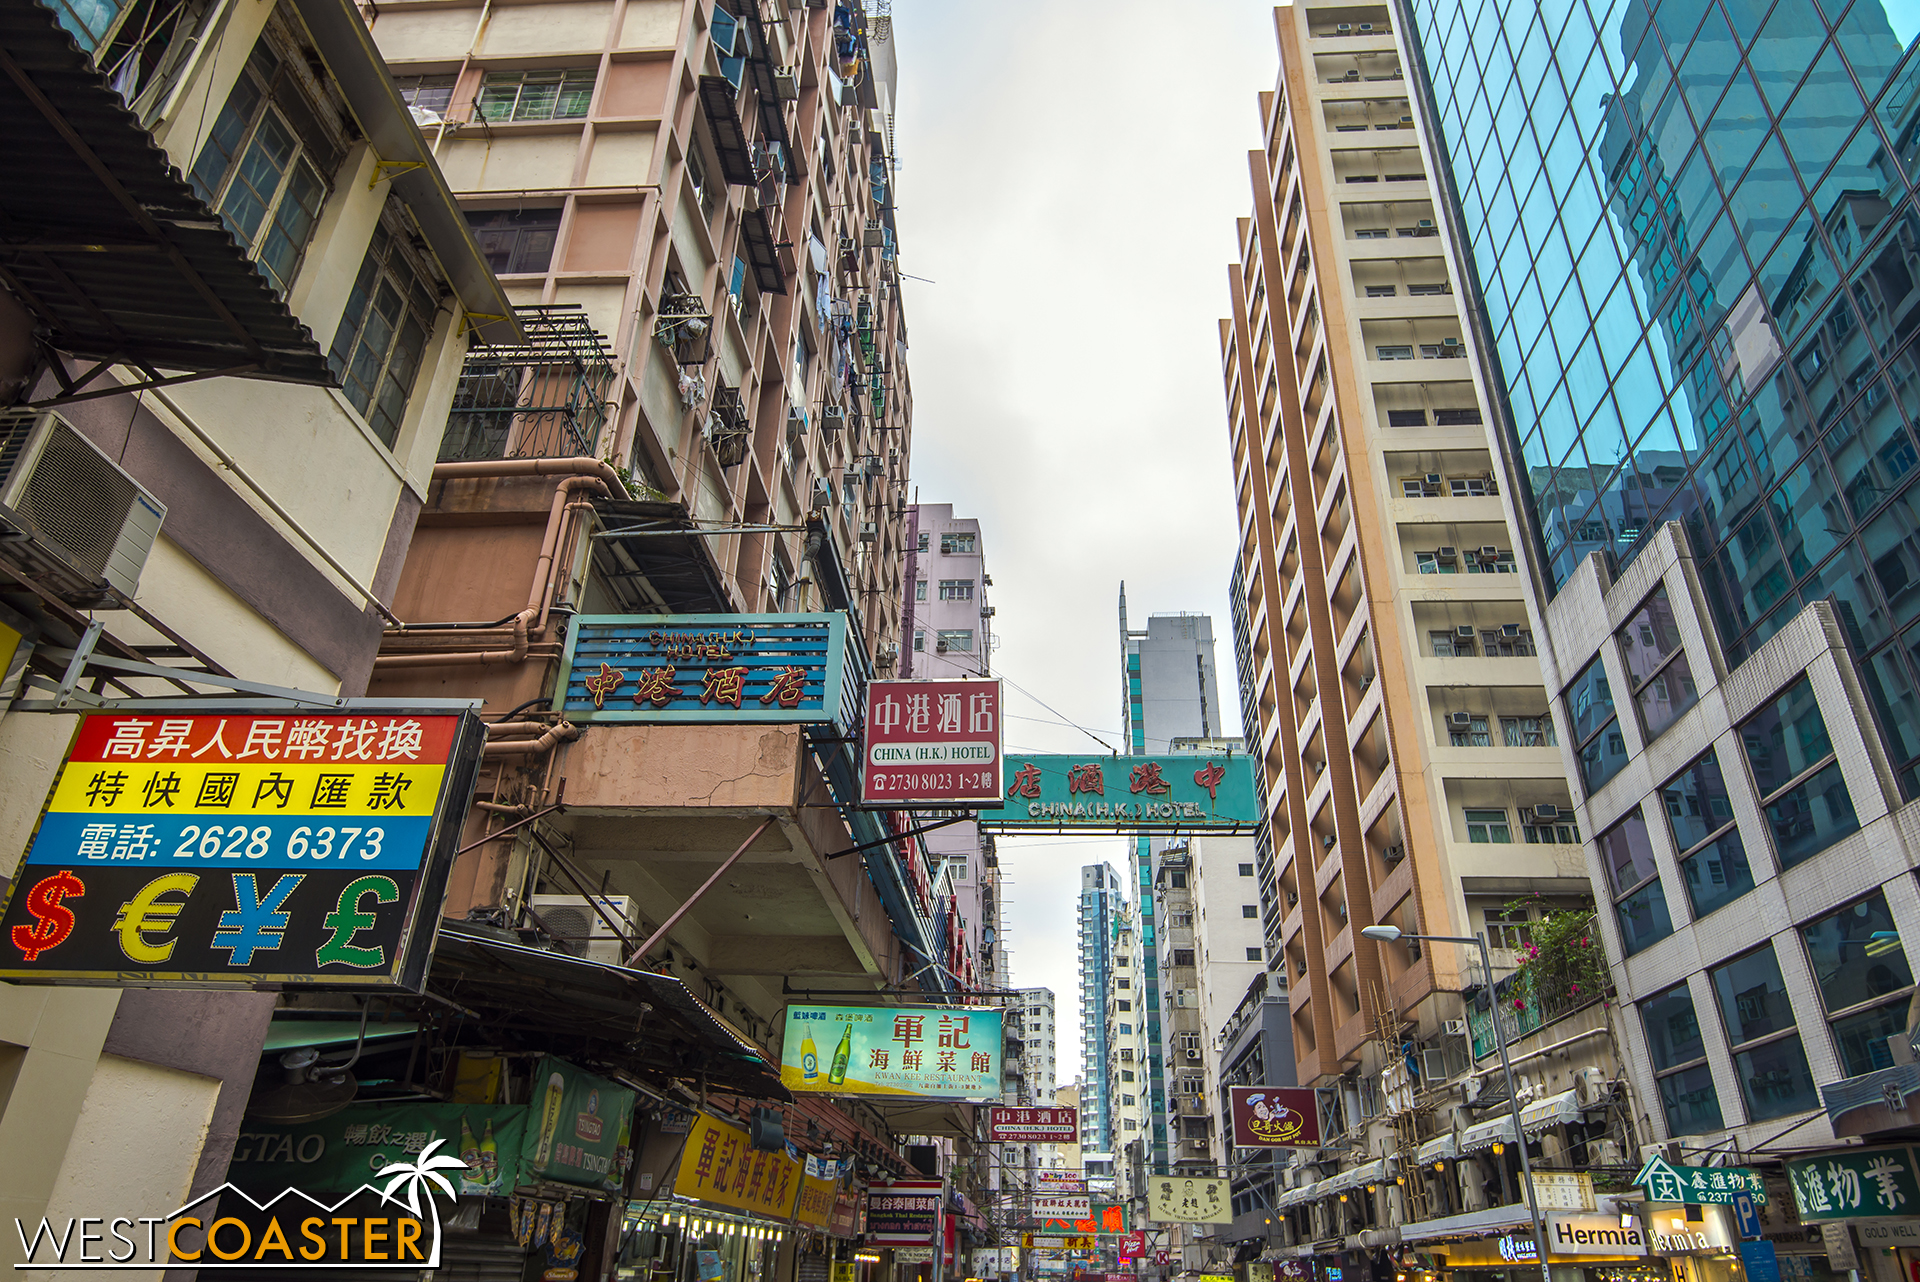 Kowloon provides a sense of the old city. Well, not super old, but older than Hong Kong Island.